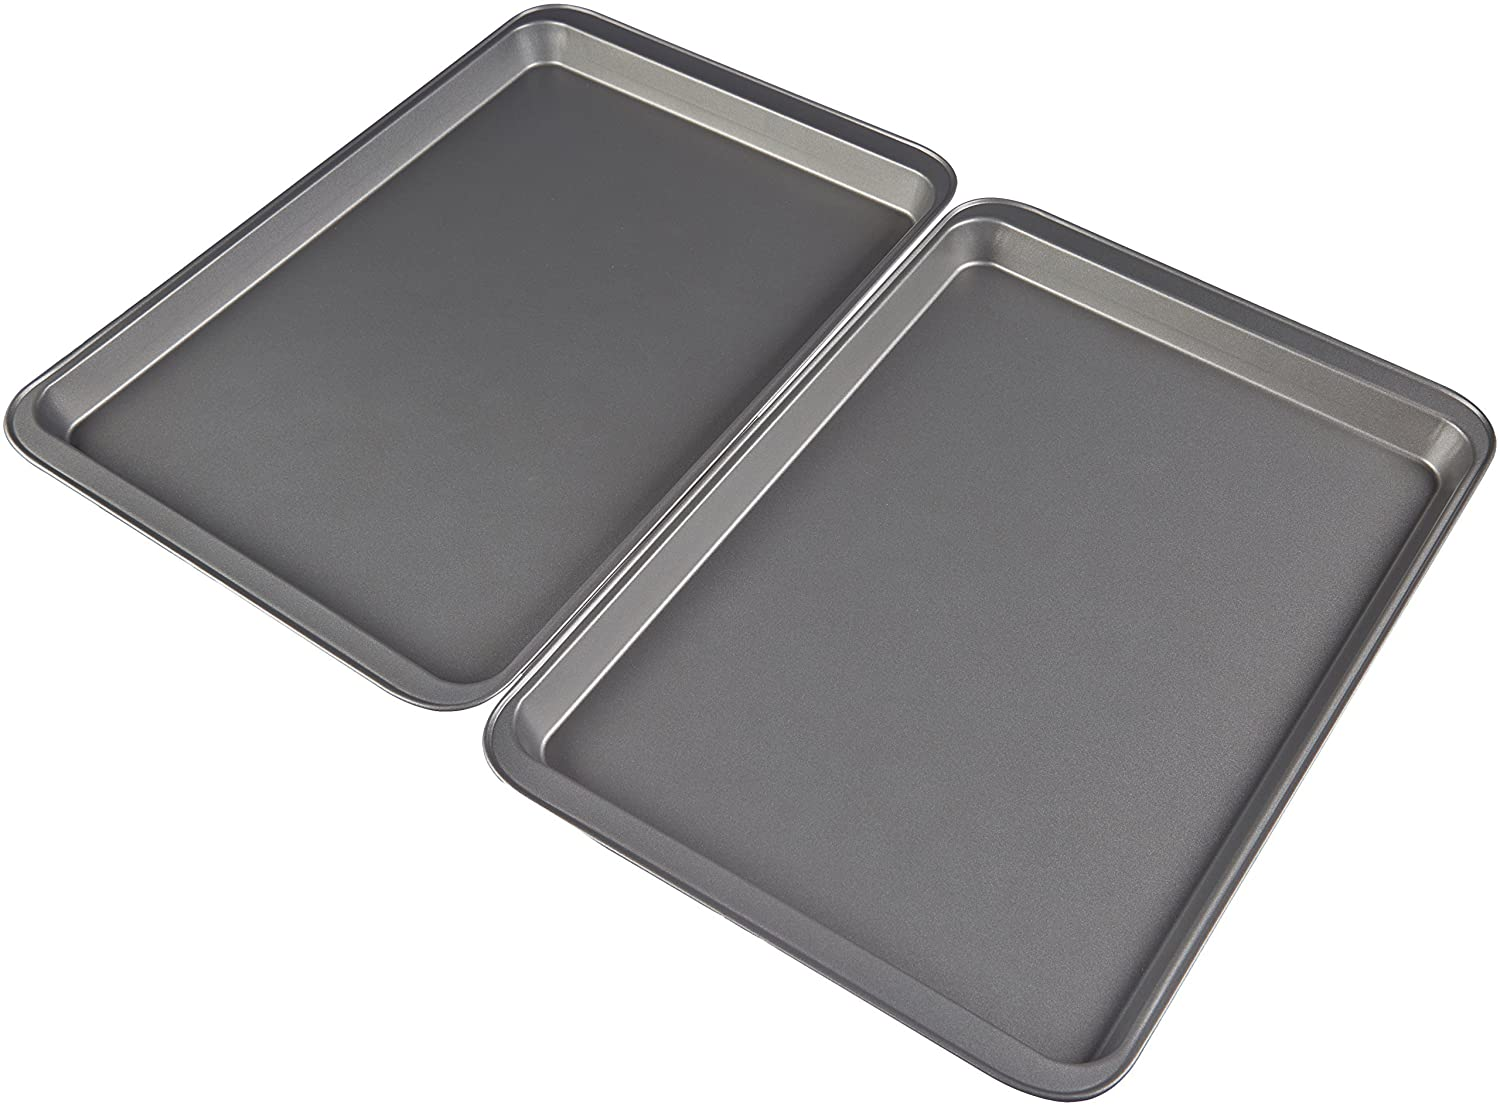 AmazonBasics Carbon Steel Baking Sheet - 2-Pack 78202